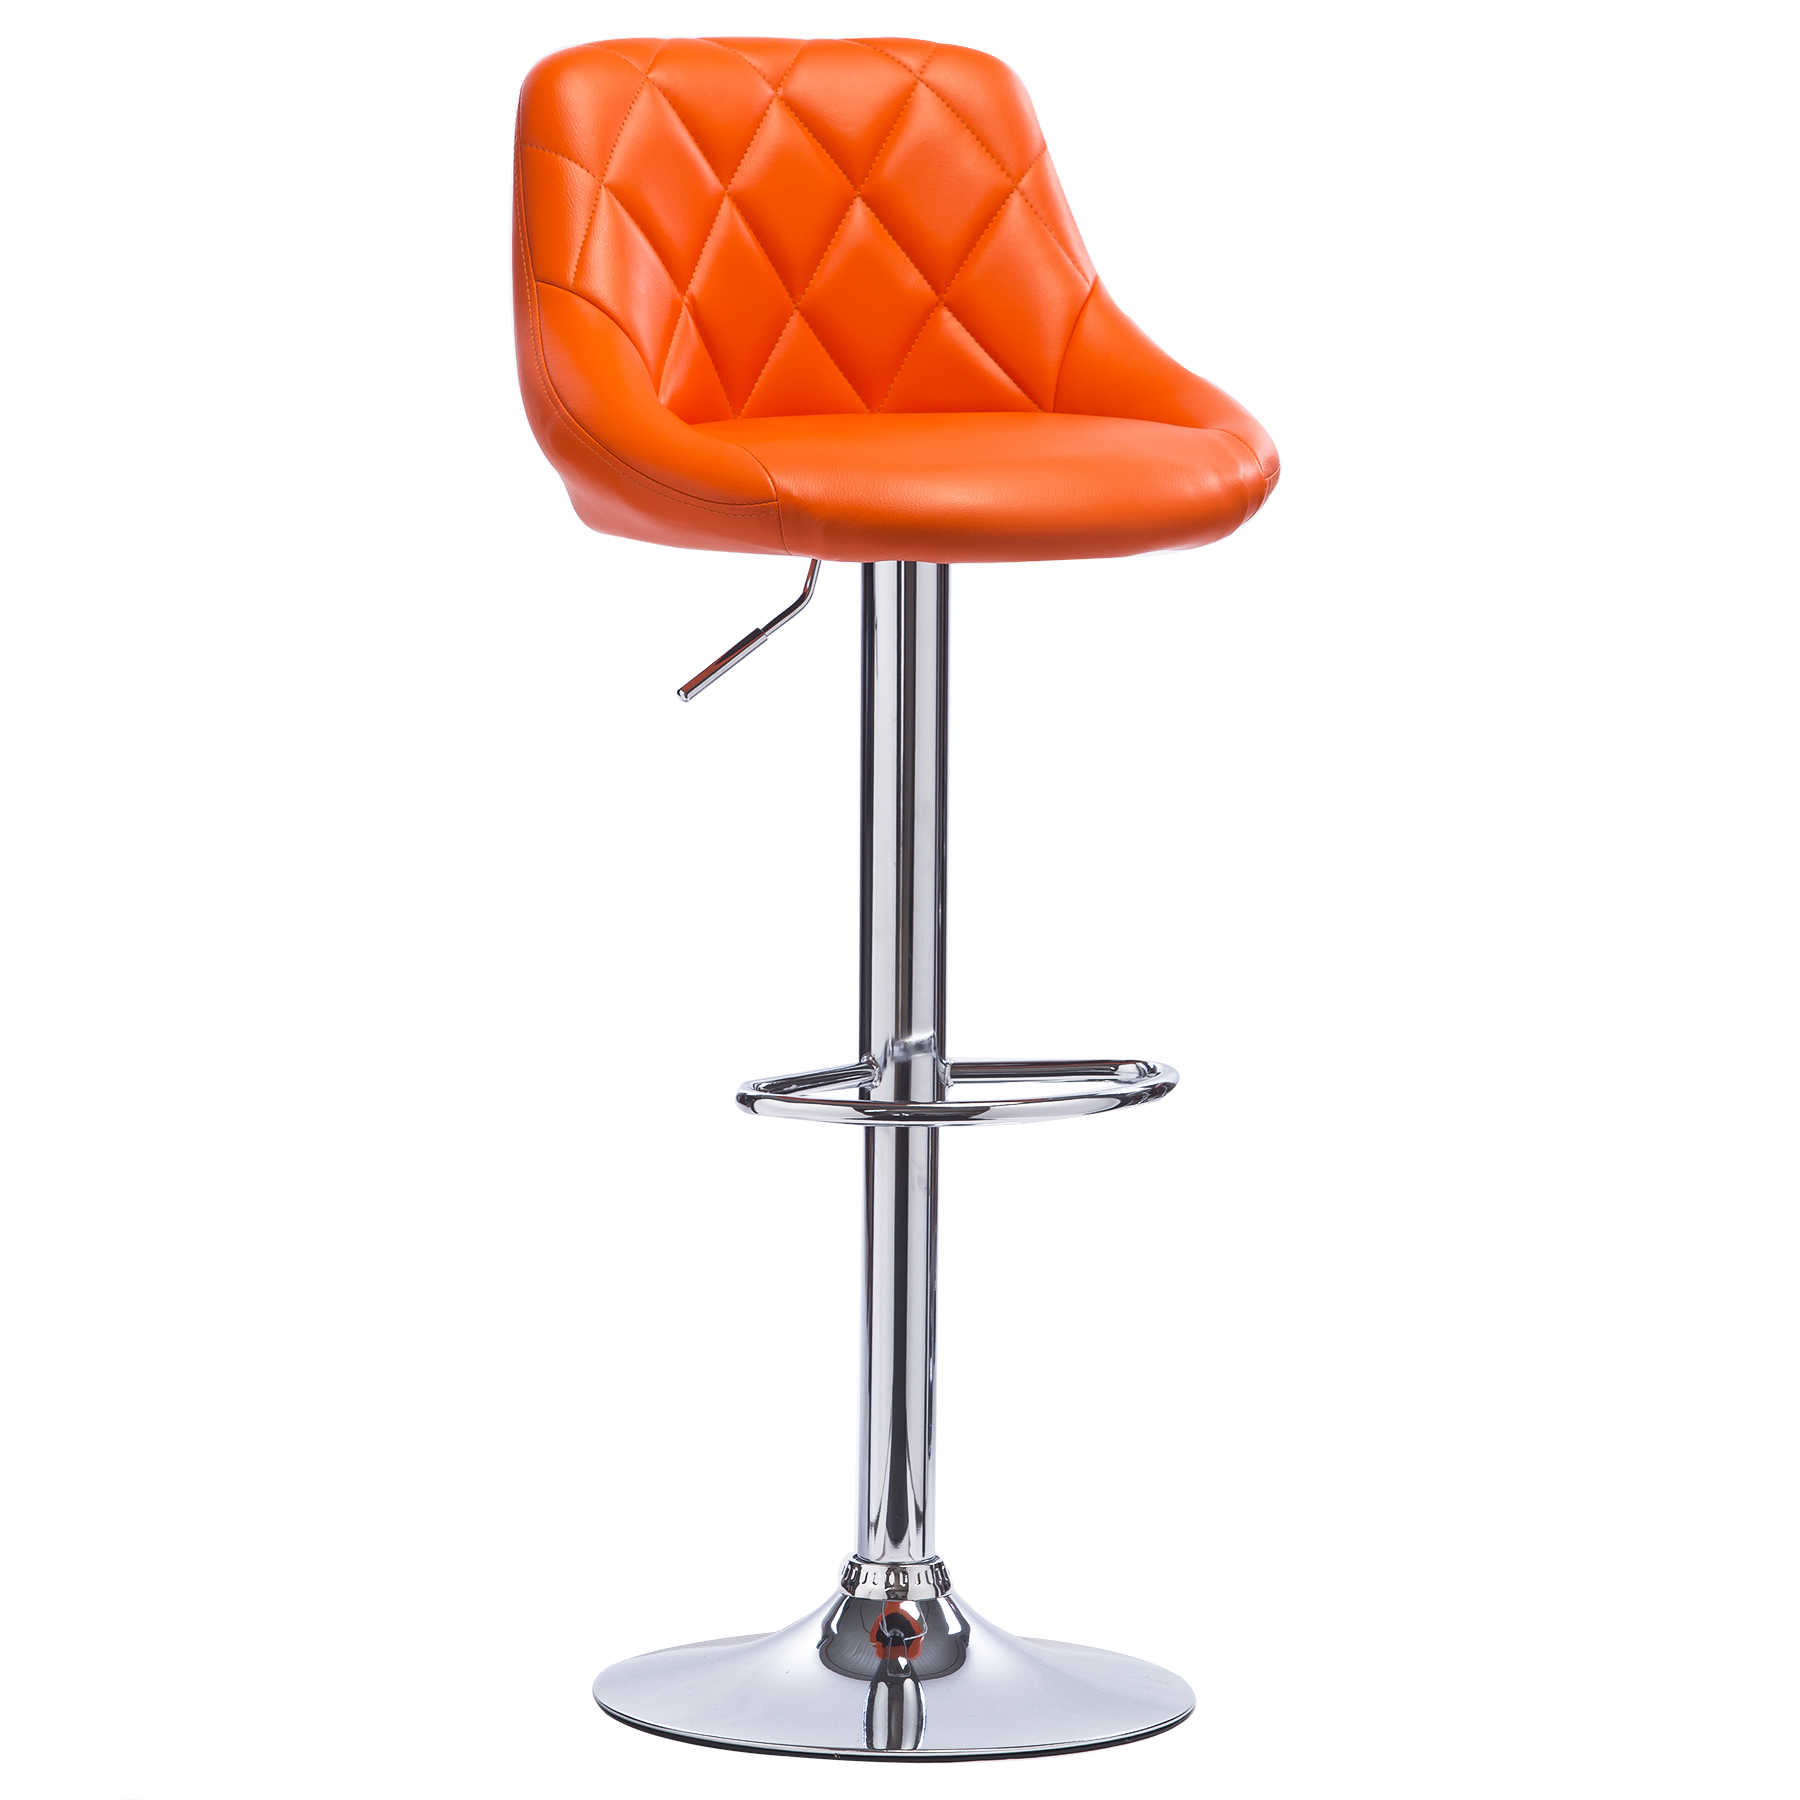 1 pcs bar stools swivel kitchen breakfast stool chair for Stool chair